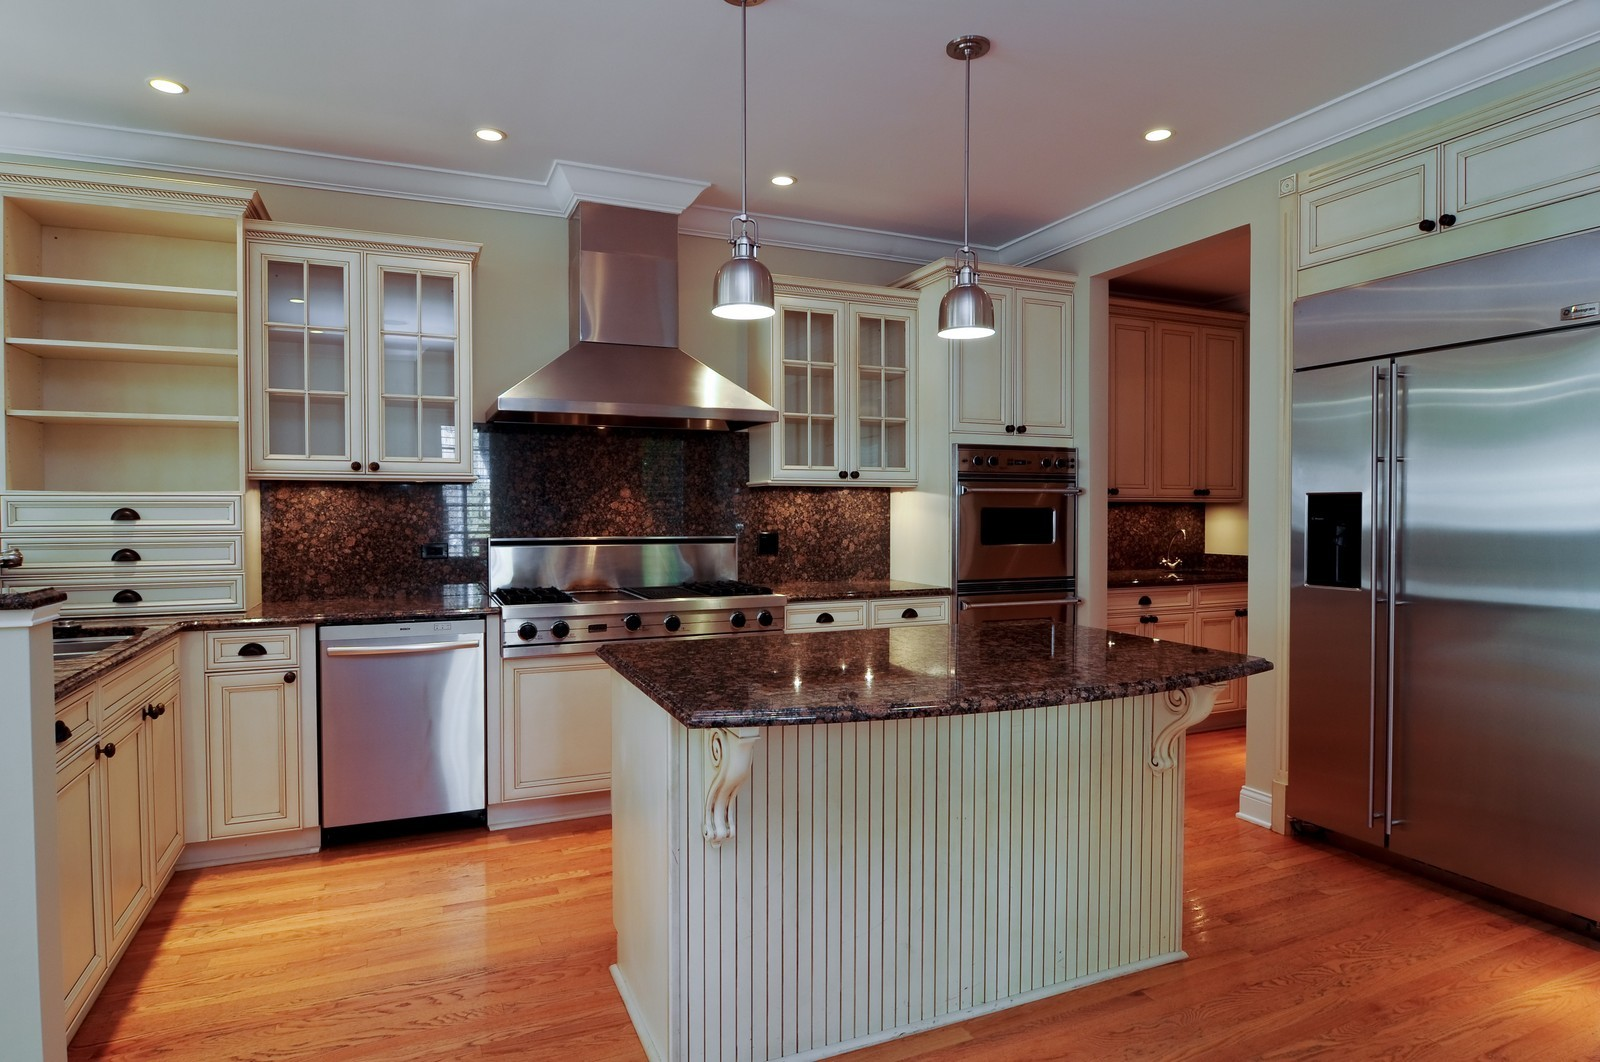 Real Estate Photography - 2247 N Clifton, Chicago, IL, 60614 - Kitchen